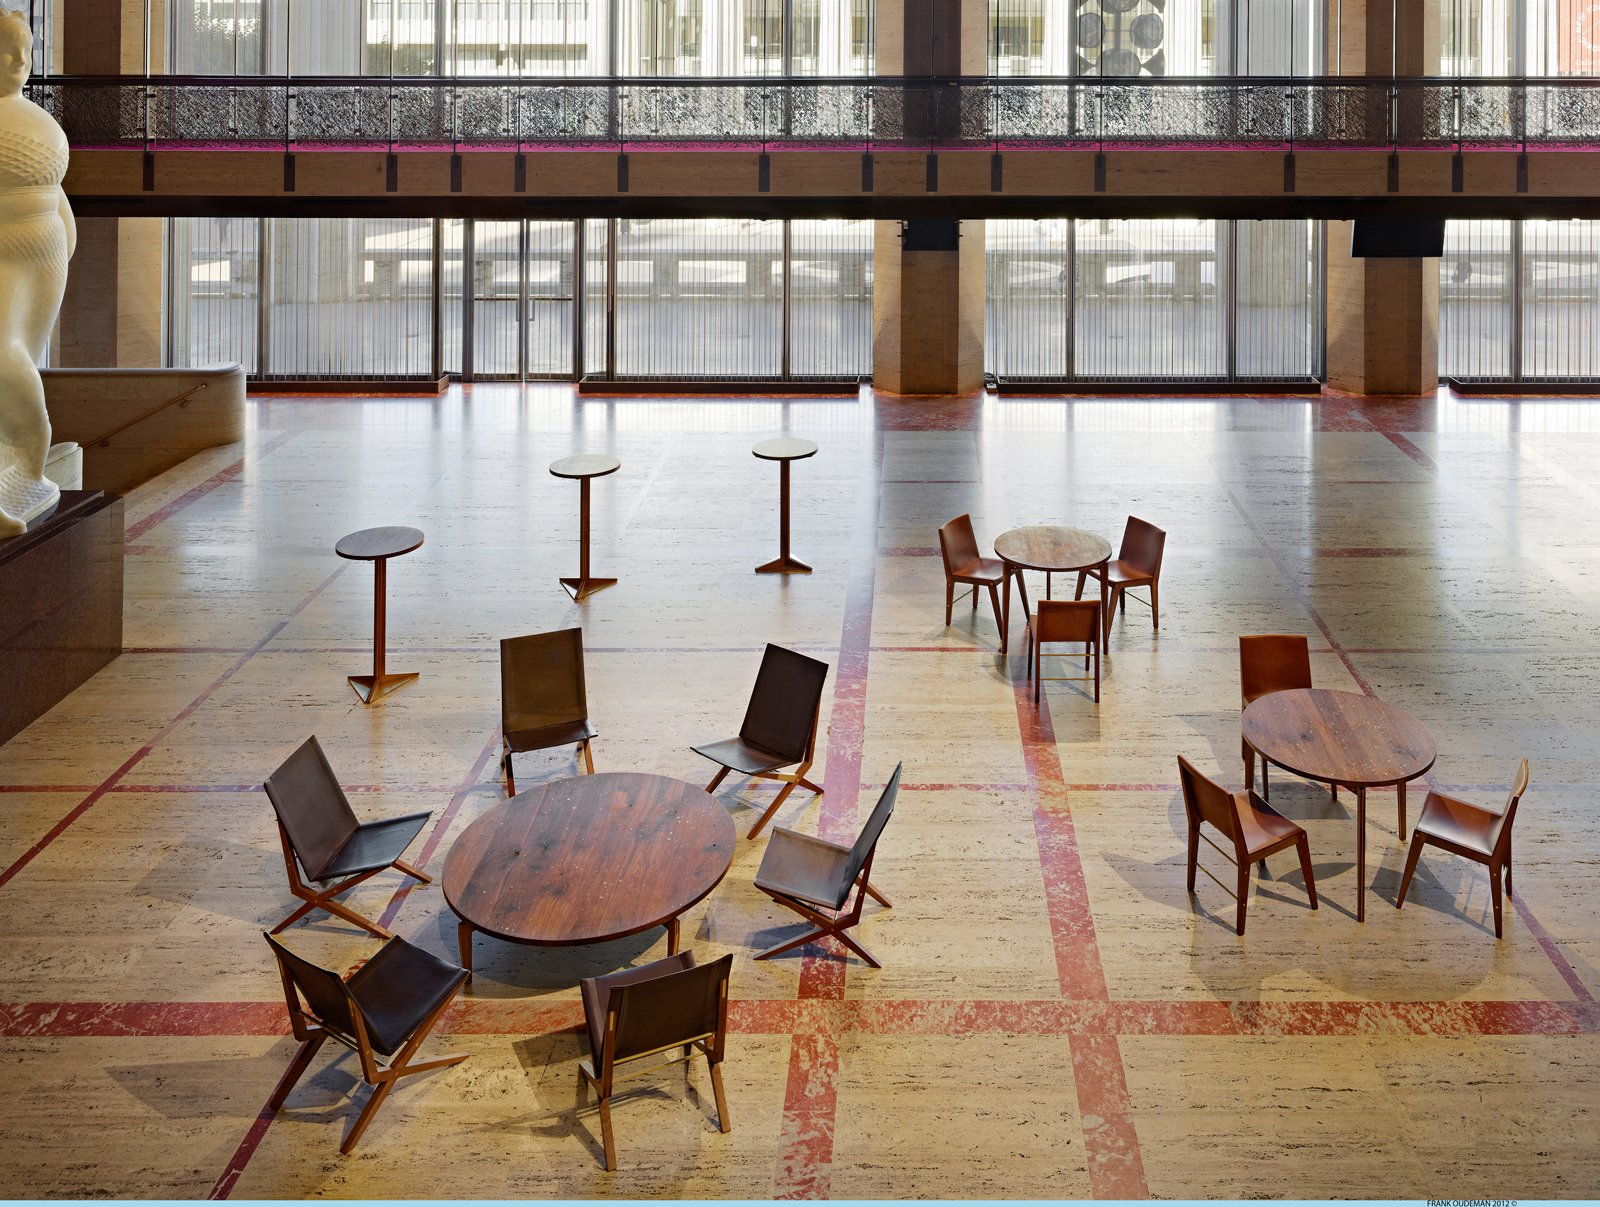 The Promenade of the David H. Koch Theater featuring seating collection designed by Asher Israelow. Photo by Frank Oudeman.  Photo 3 of 6 in The Ballet's Crown Jewels